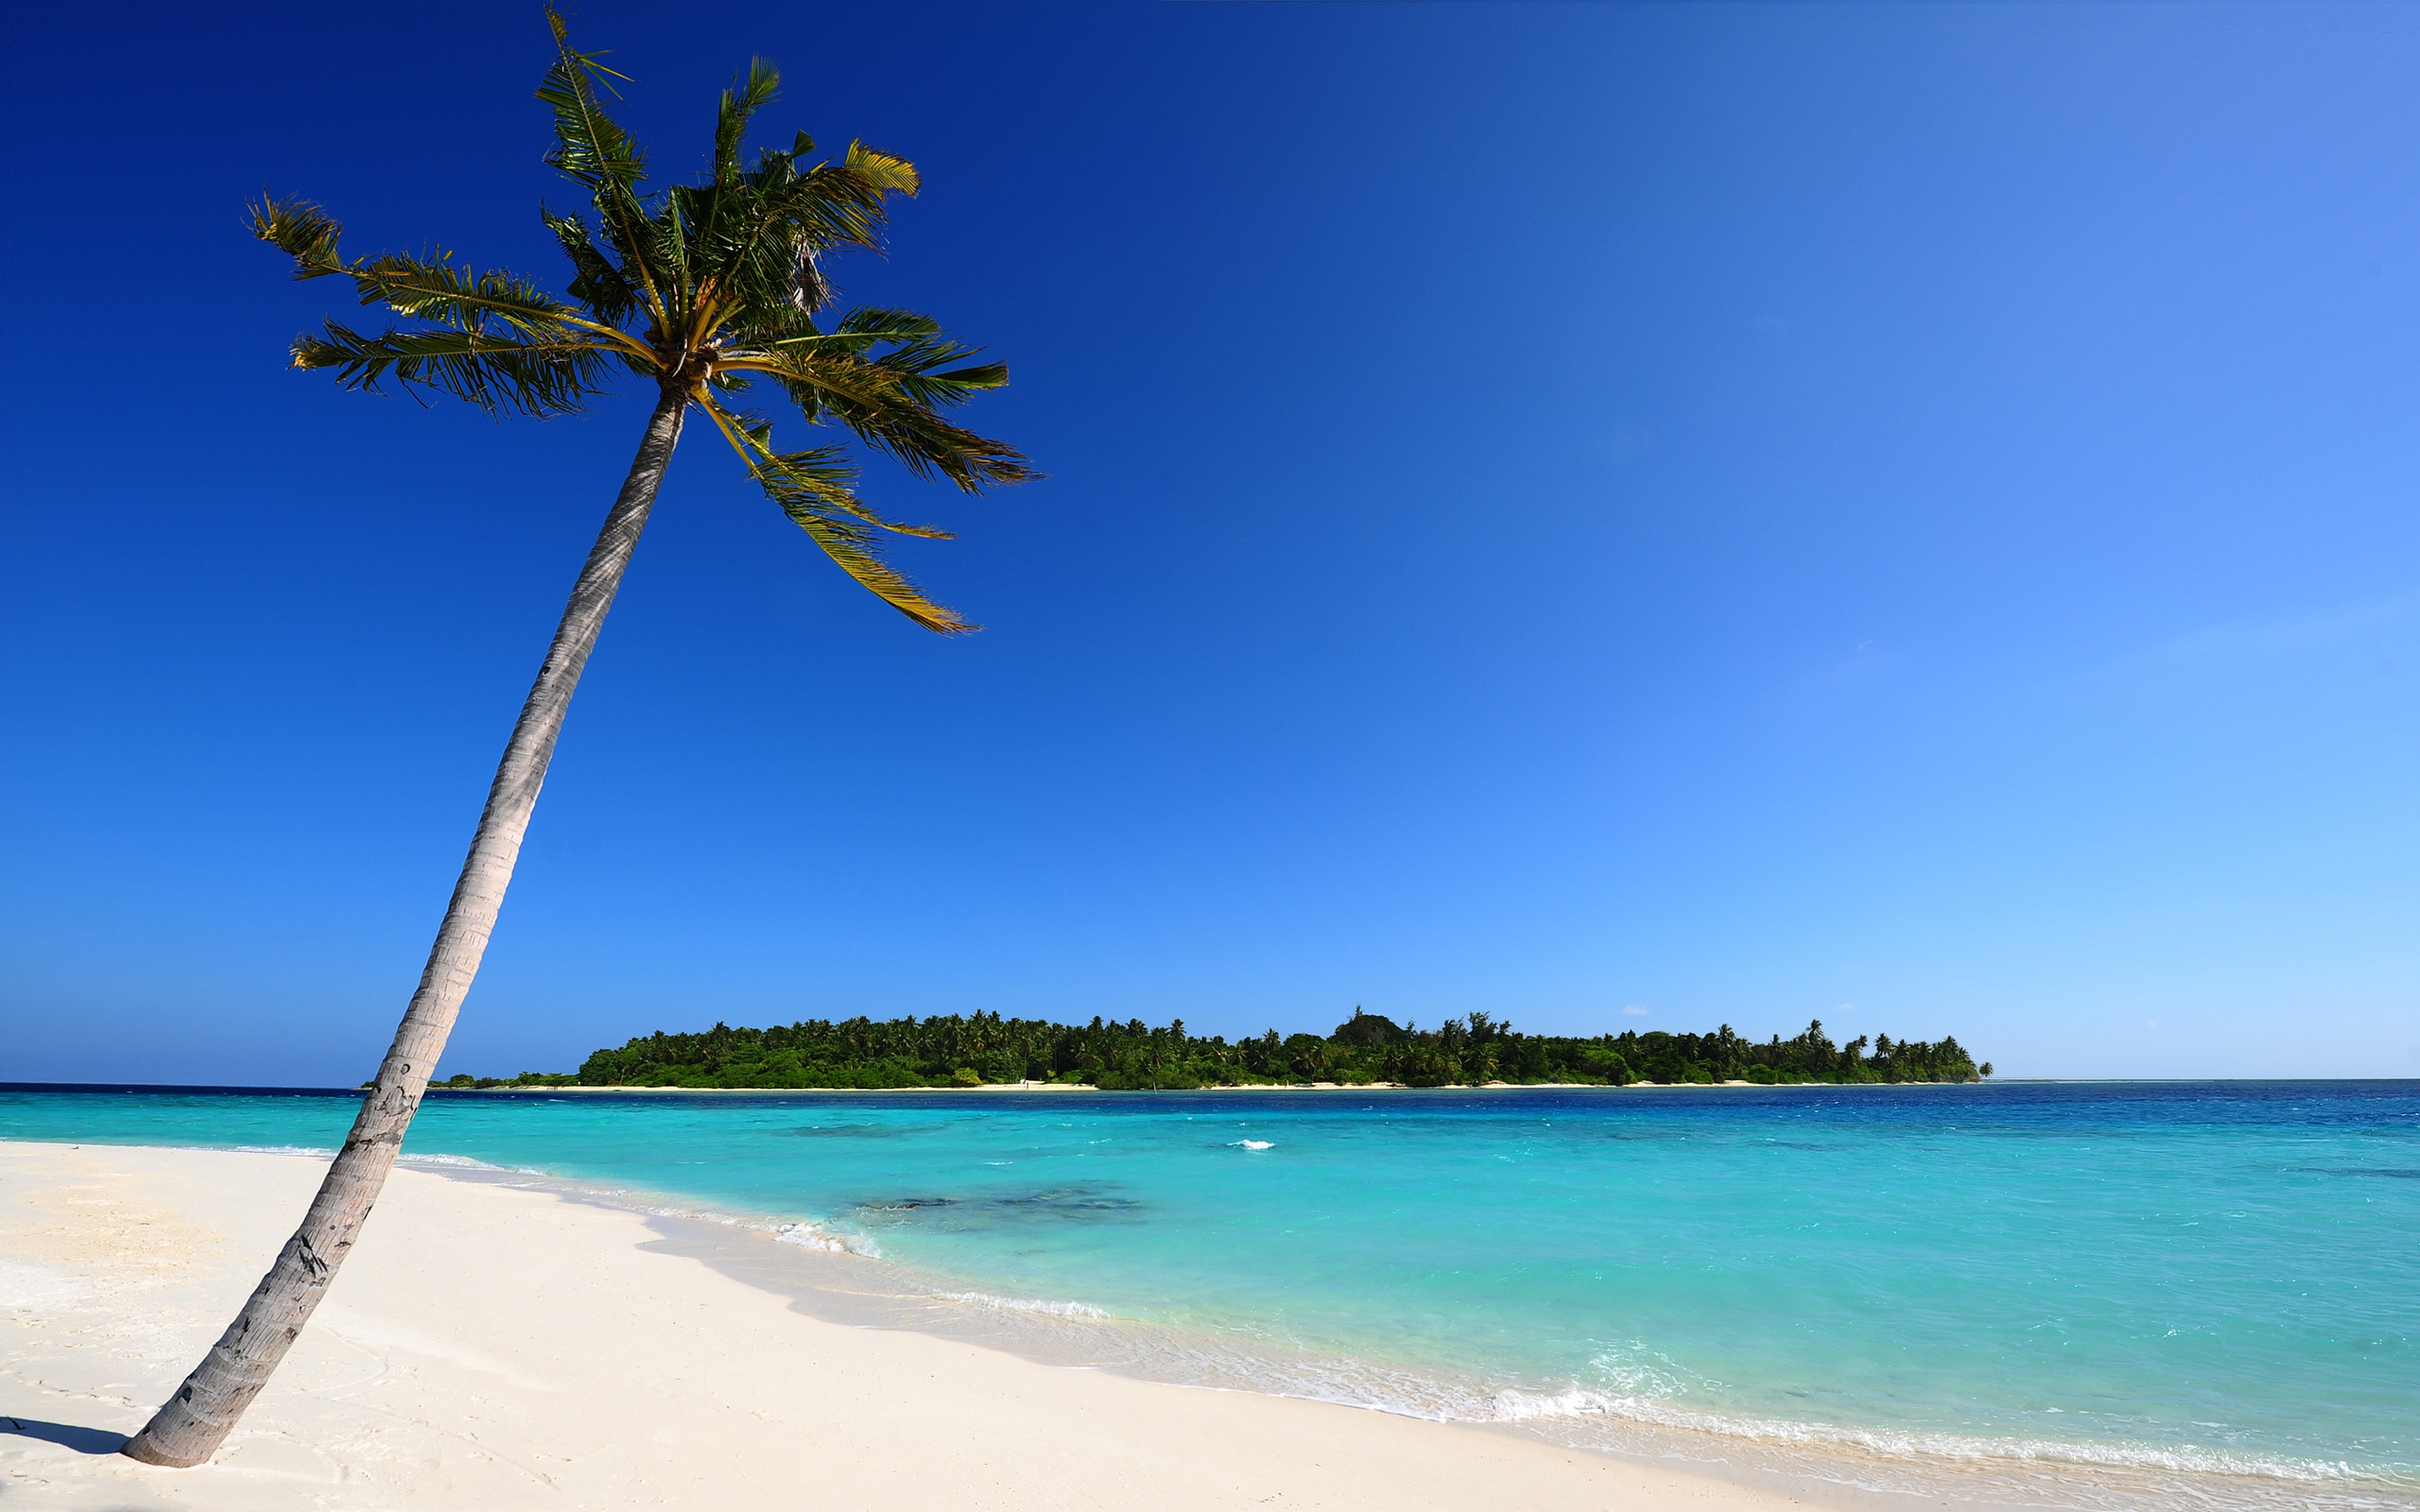 Maldivian Beach Wallpaper - Maldivian Beach Wallpaper